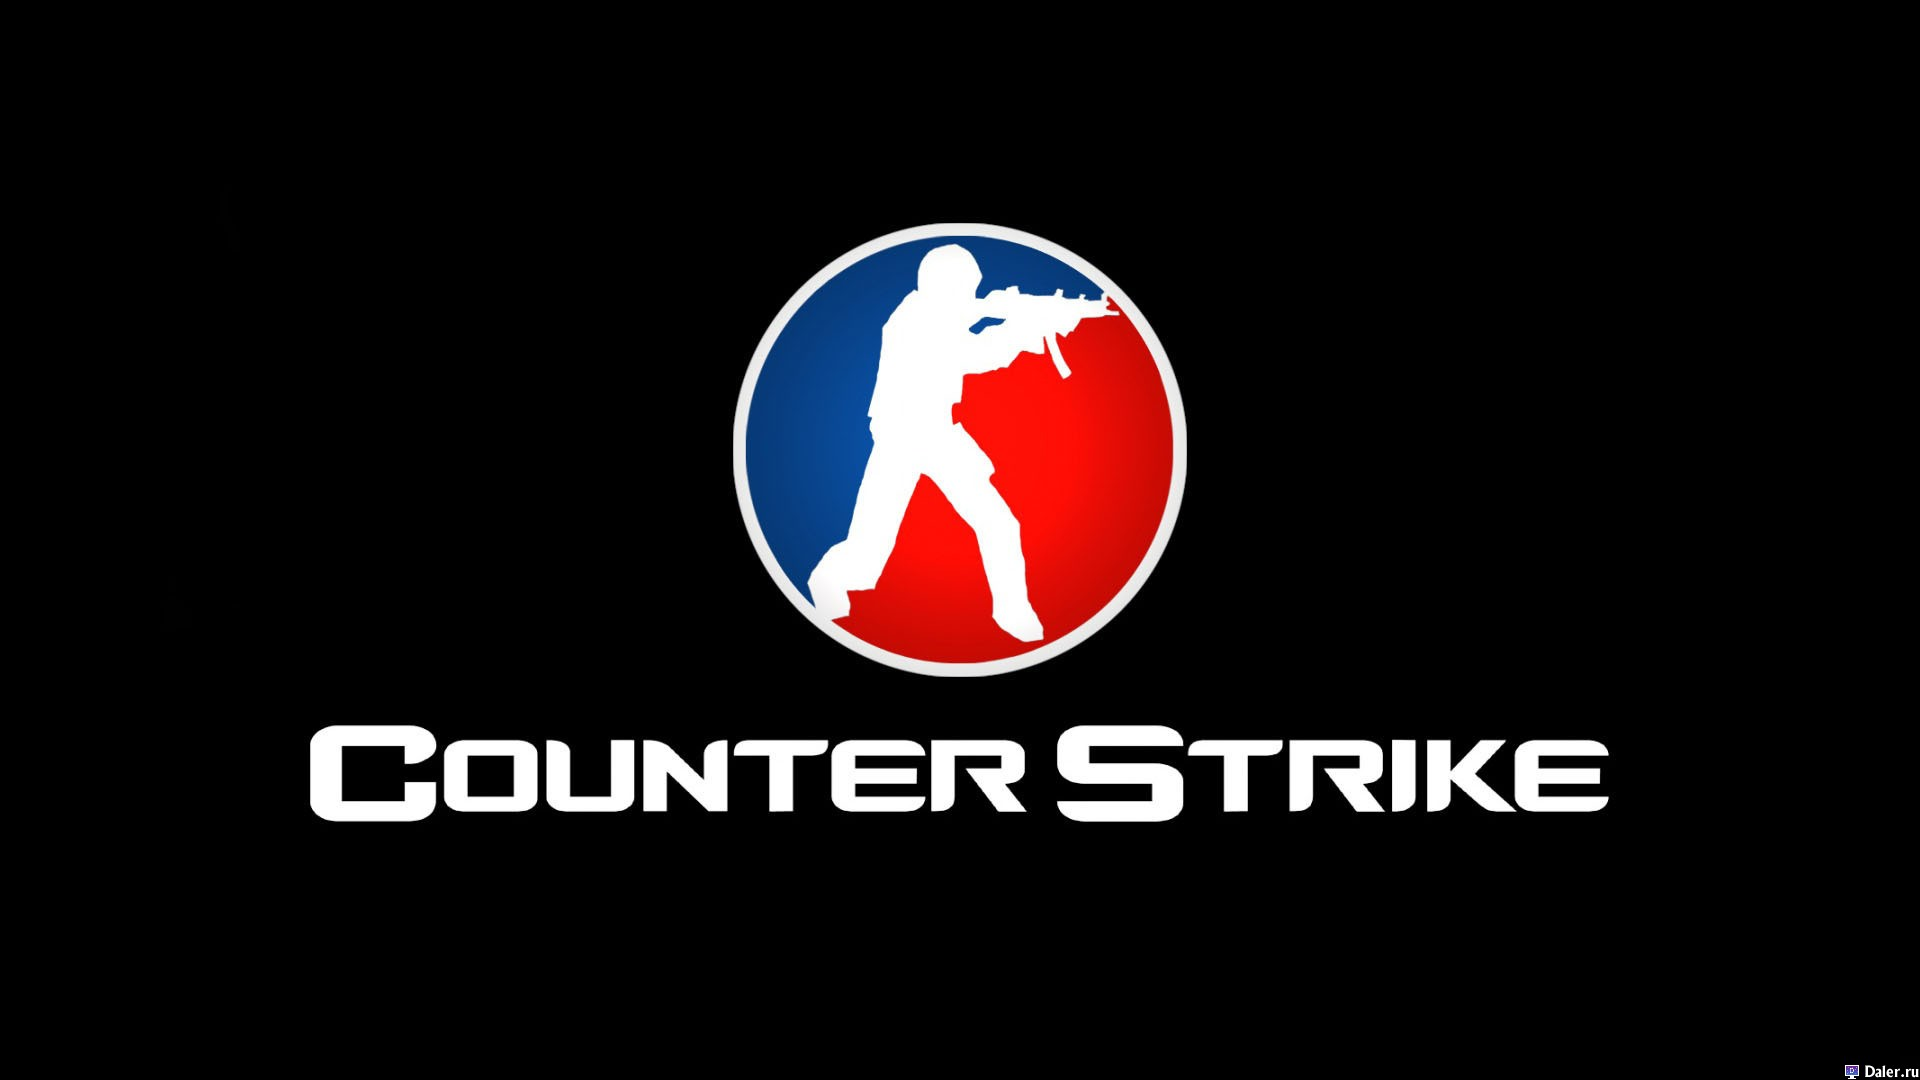 Counter Strike 1080p 1920x1080